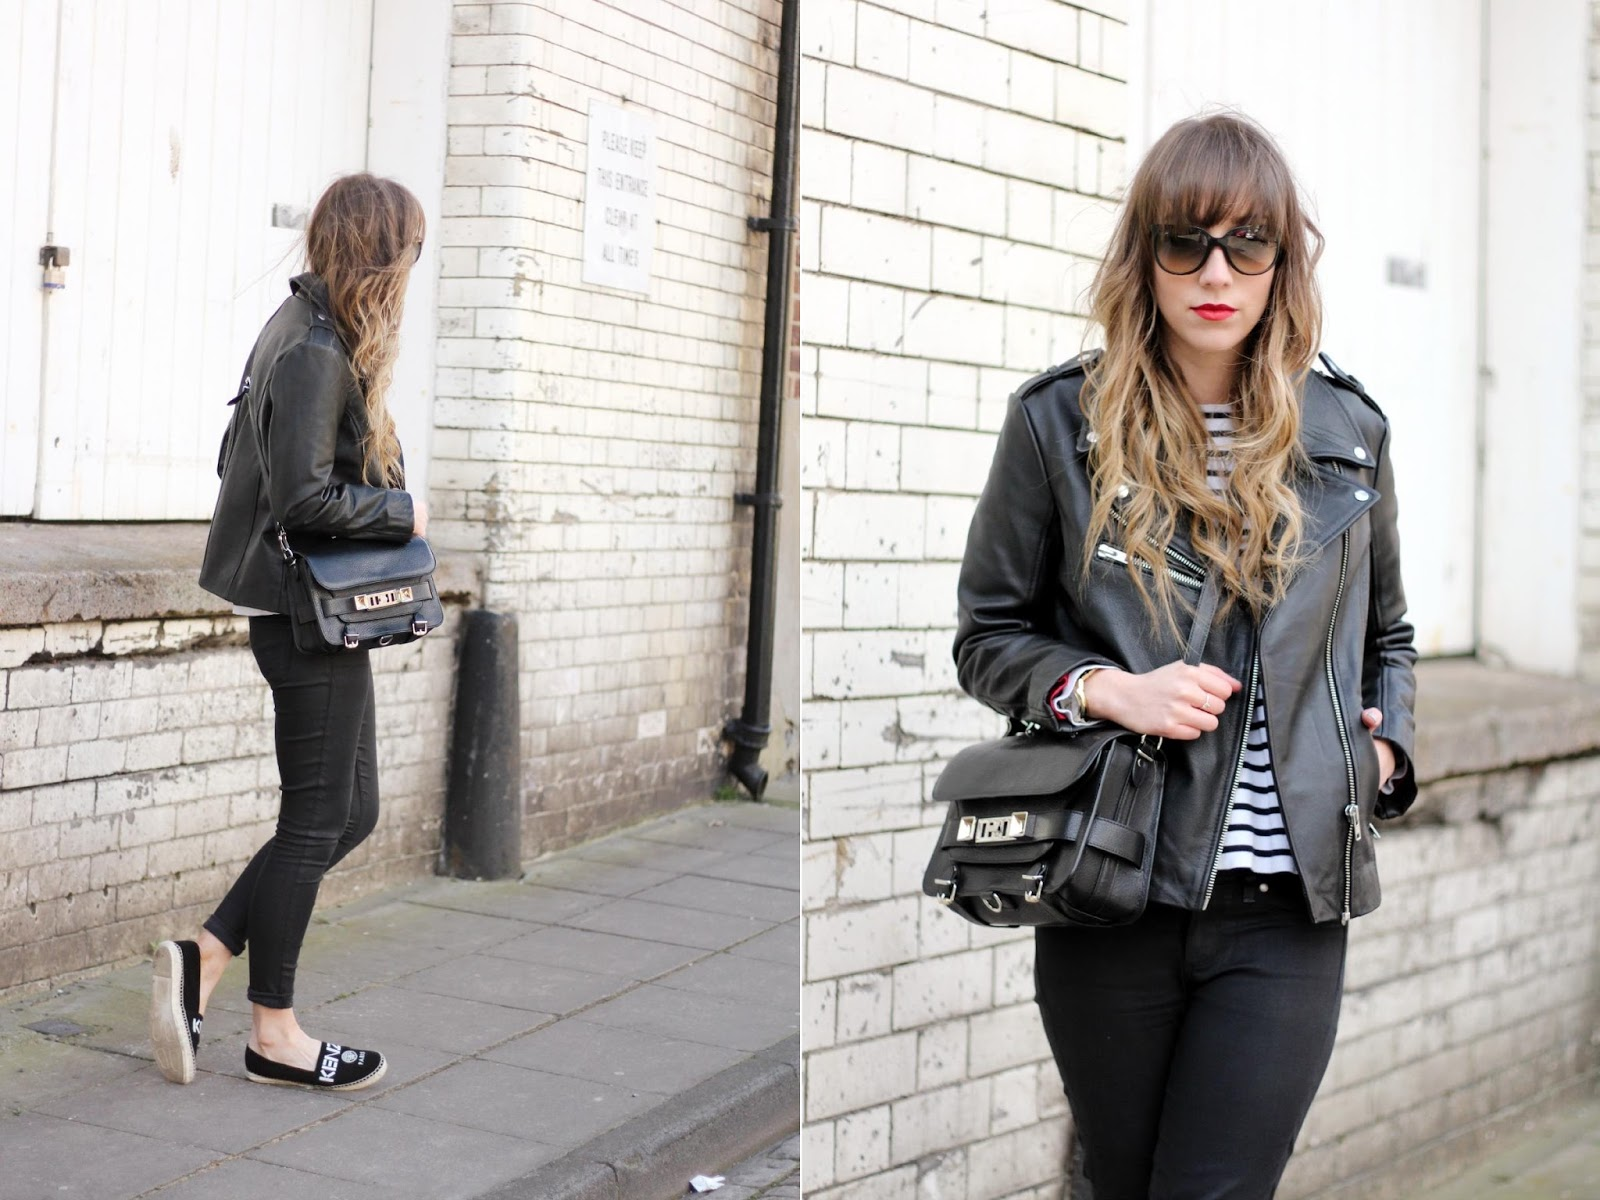 6b1fe8c5f5 jacket: Urban Outfitters | jumper: Zara | jeans: Paige | shoes: Kenzo |  bag: Proenza Schouler PS11 | sunglasses: RayBan*